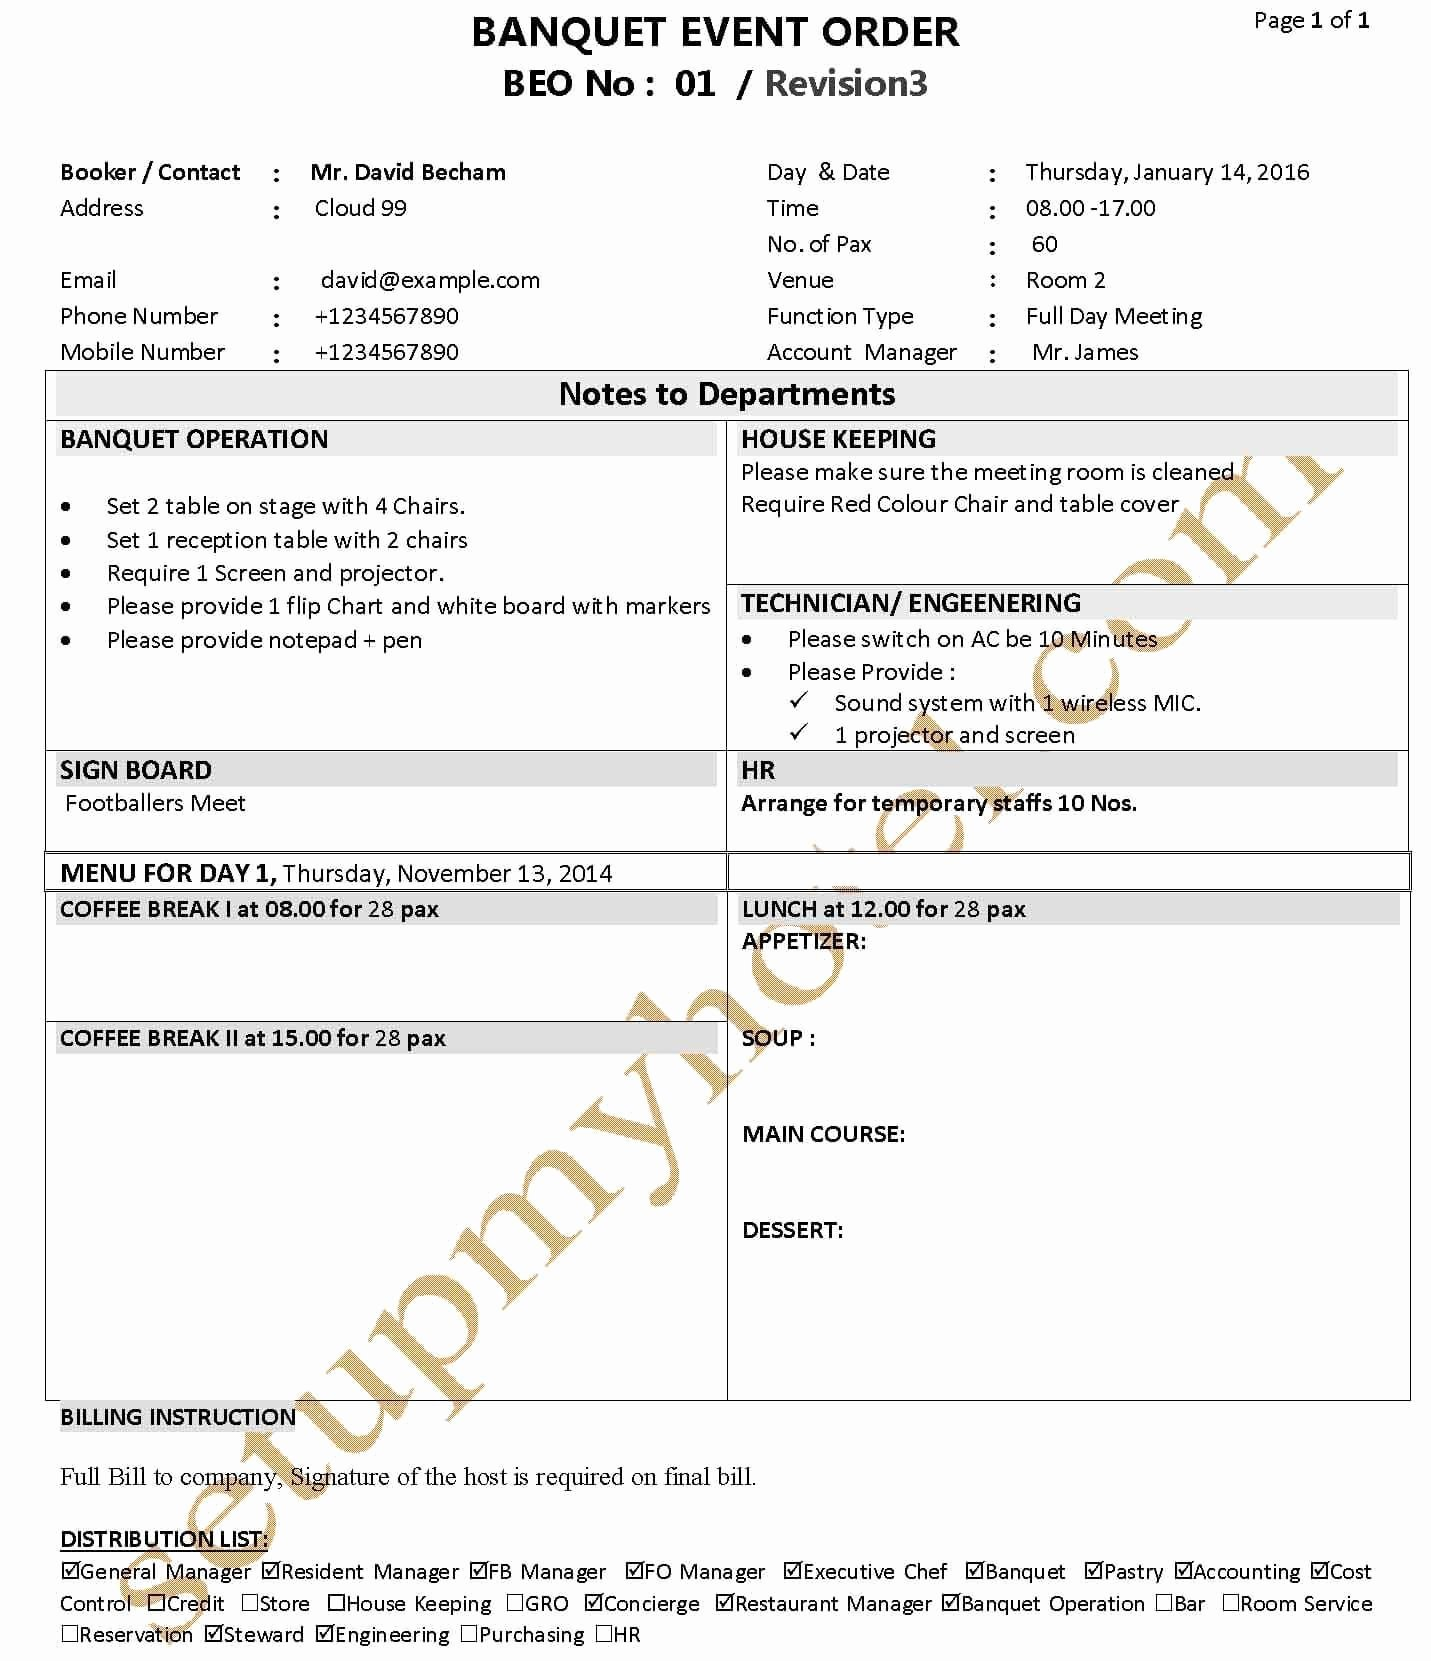 Catering event order form Template Unique Banquet Function Sheet Banquet event order Beo